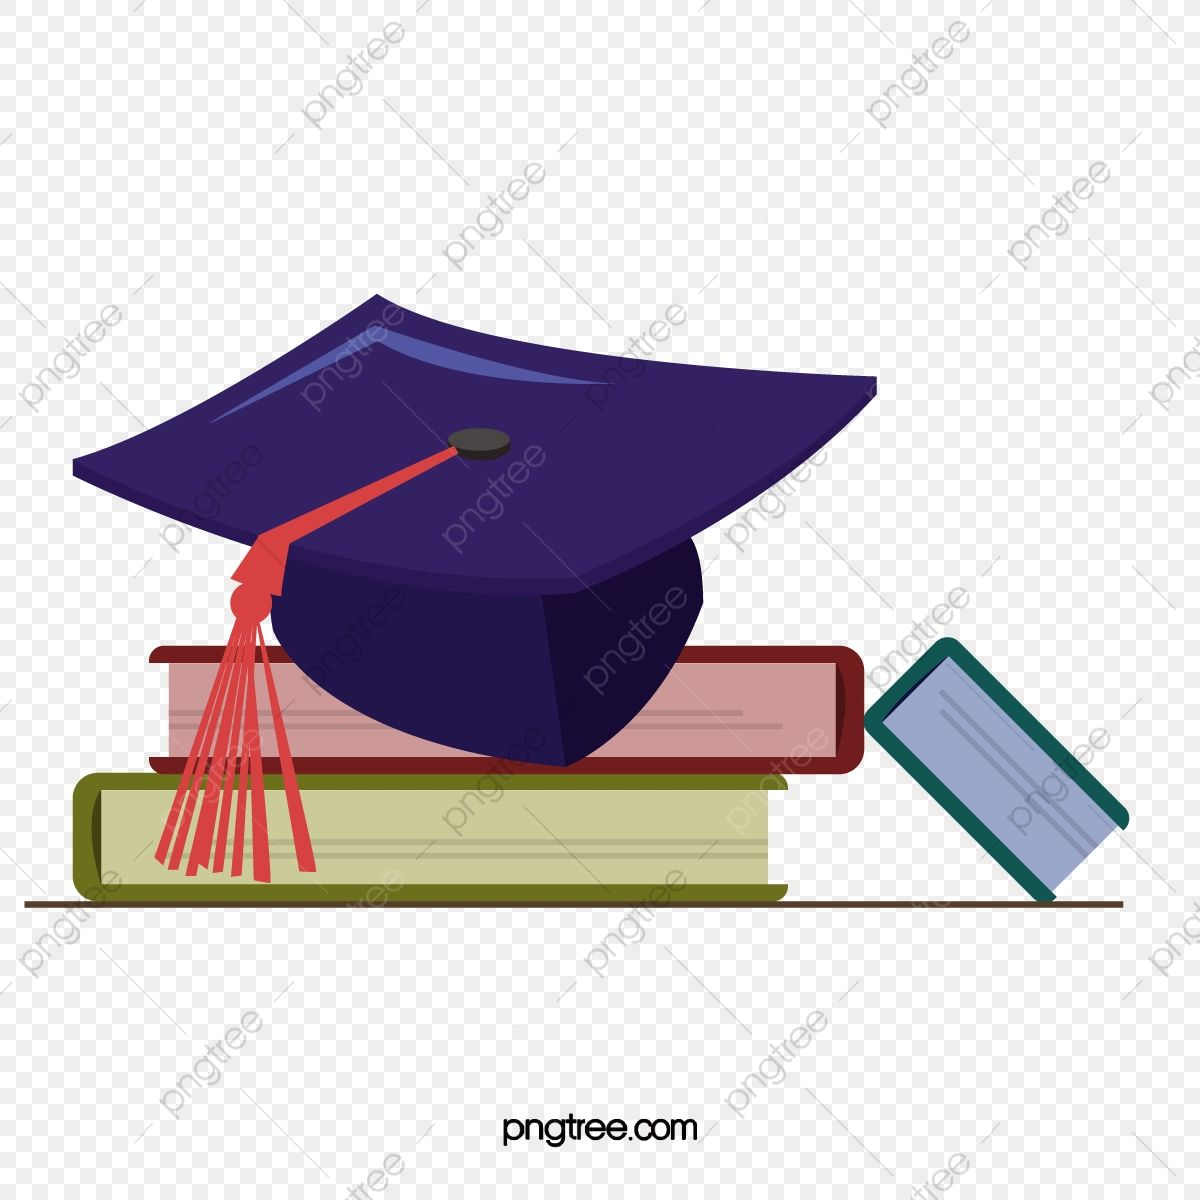 Vector Element Of Bachelors Cap For Vector Graduation Book Bachelor Bachelor Cap Png And Vector With Transparent Background For Free Download Prints For Sale Vector Transparent Background